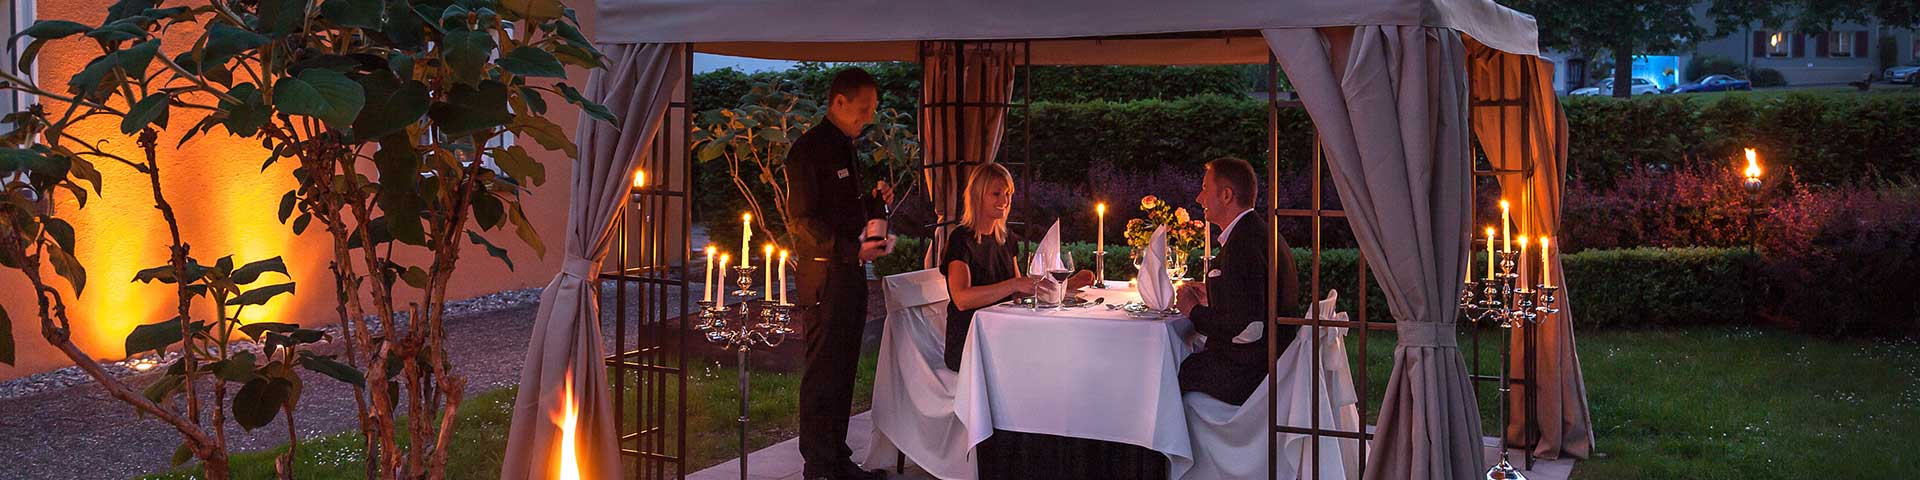 Ihr romantisches Candlelight Dinner